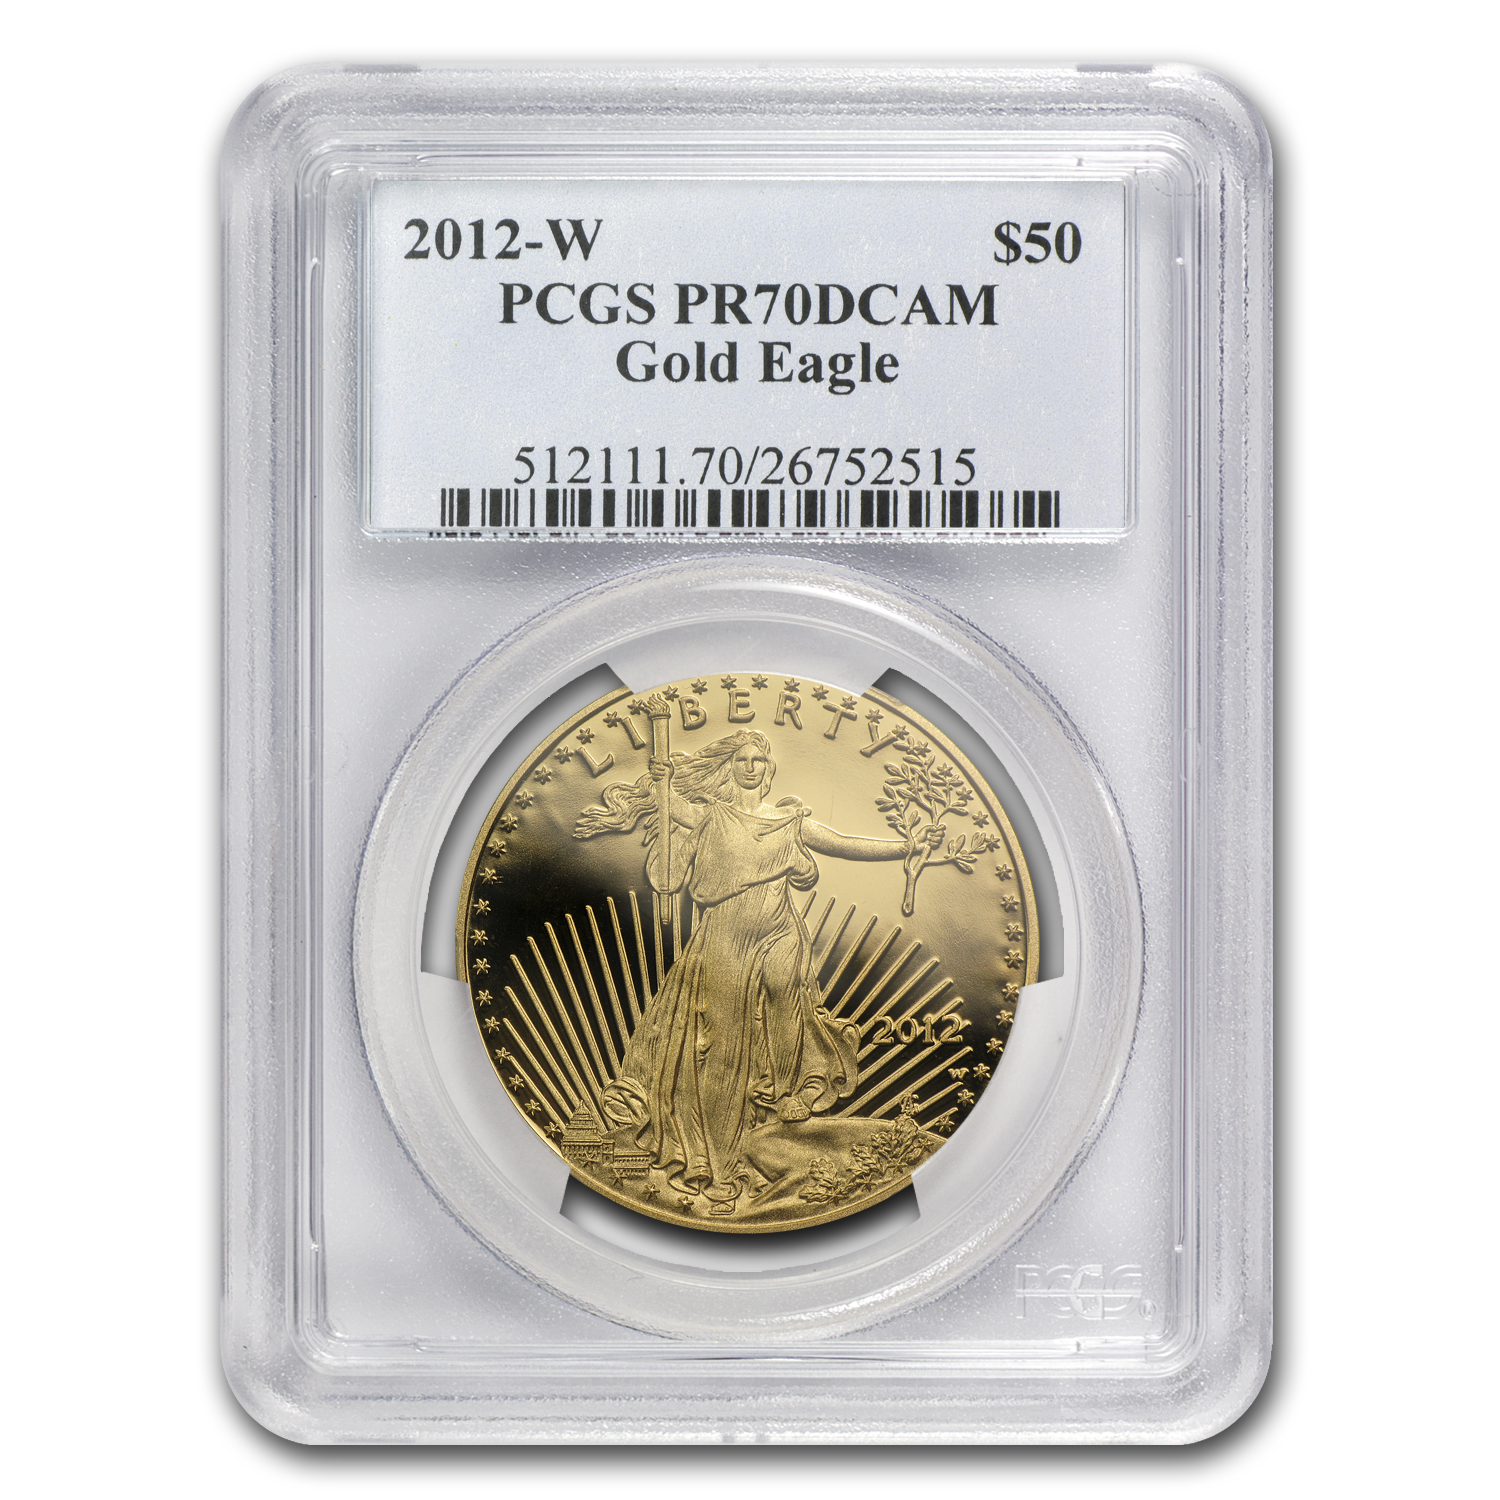 2012-W 1 oz Proof Gold American Eagle PR-70 PCGS